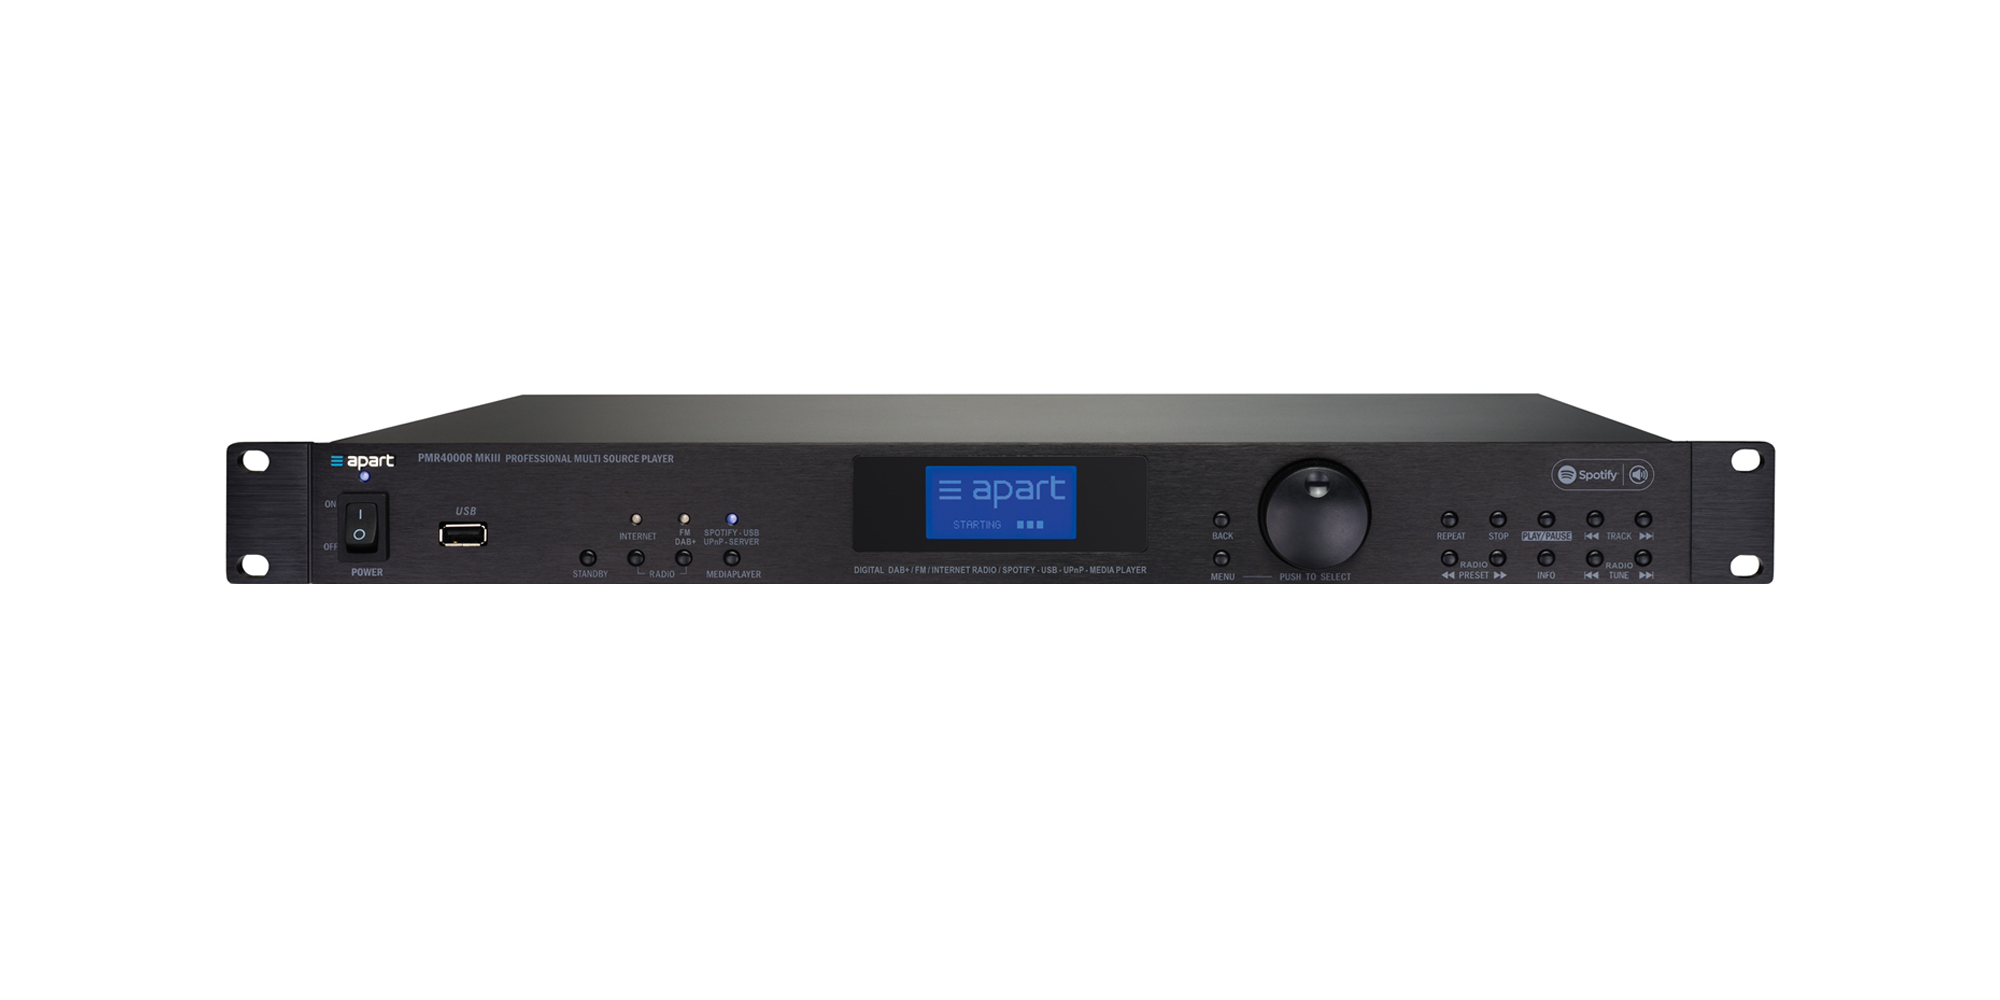 PMR4000RMKIII integrated FM RDS / DAB / DAB+ tuner, internet radio, Spotify Connect, UPnP and USB media player